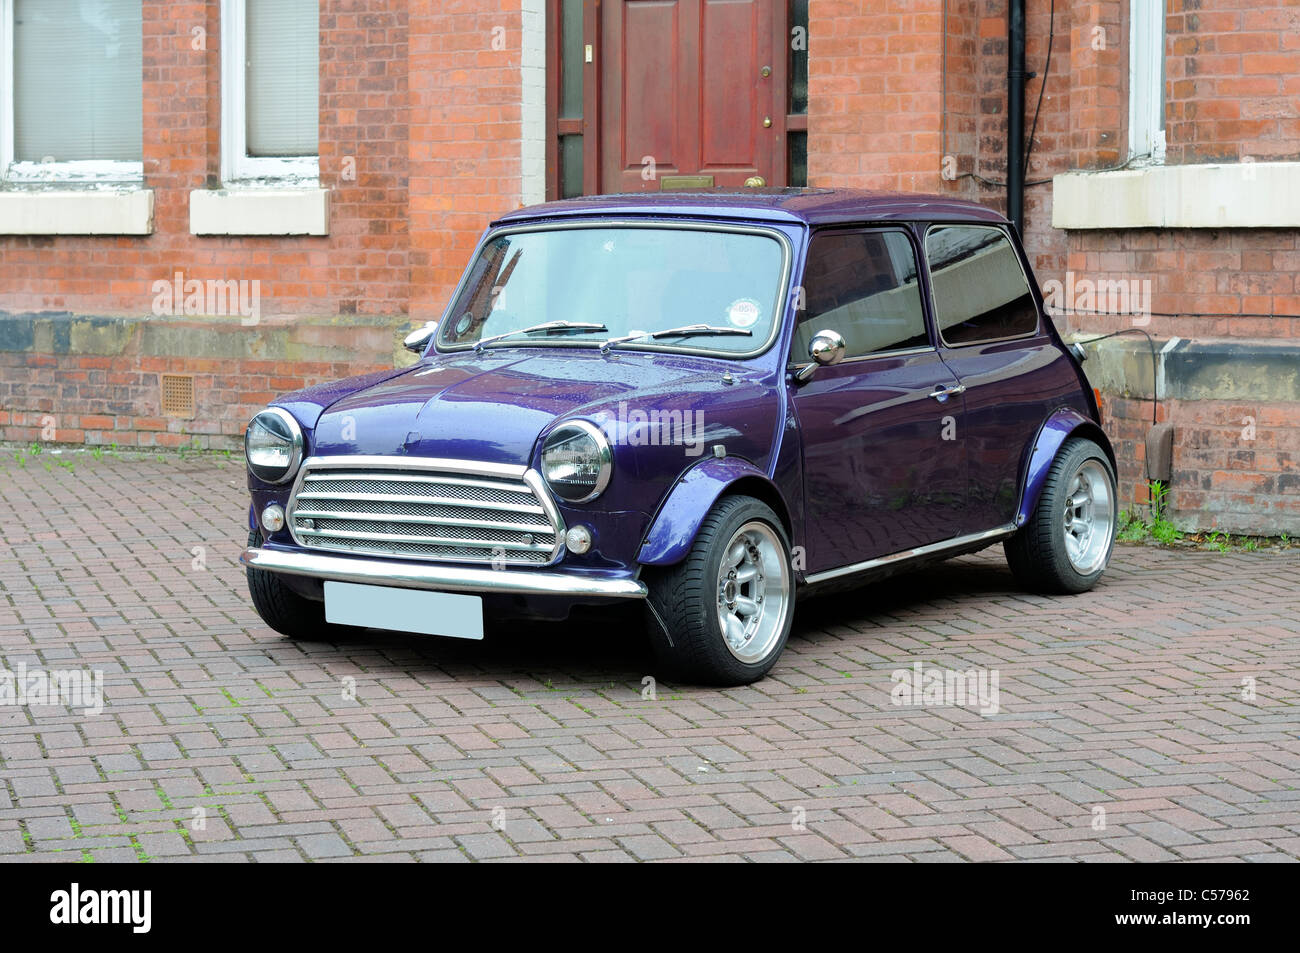 British Motor Corporation (BMC) Original Mini Car - Stock Image